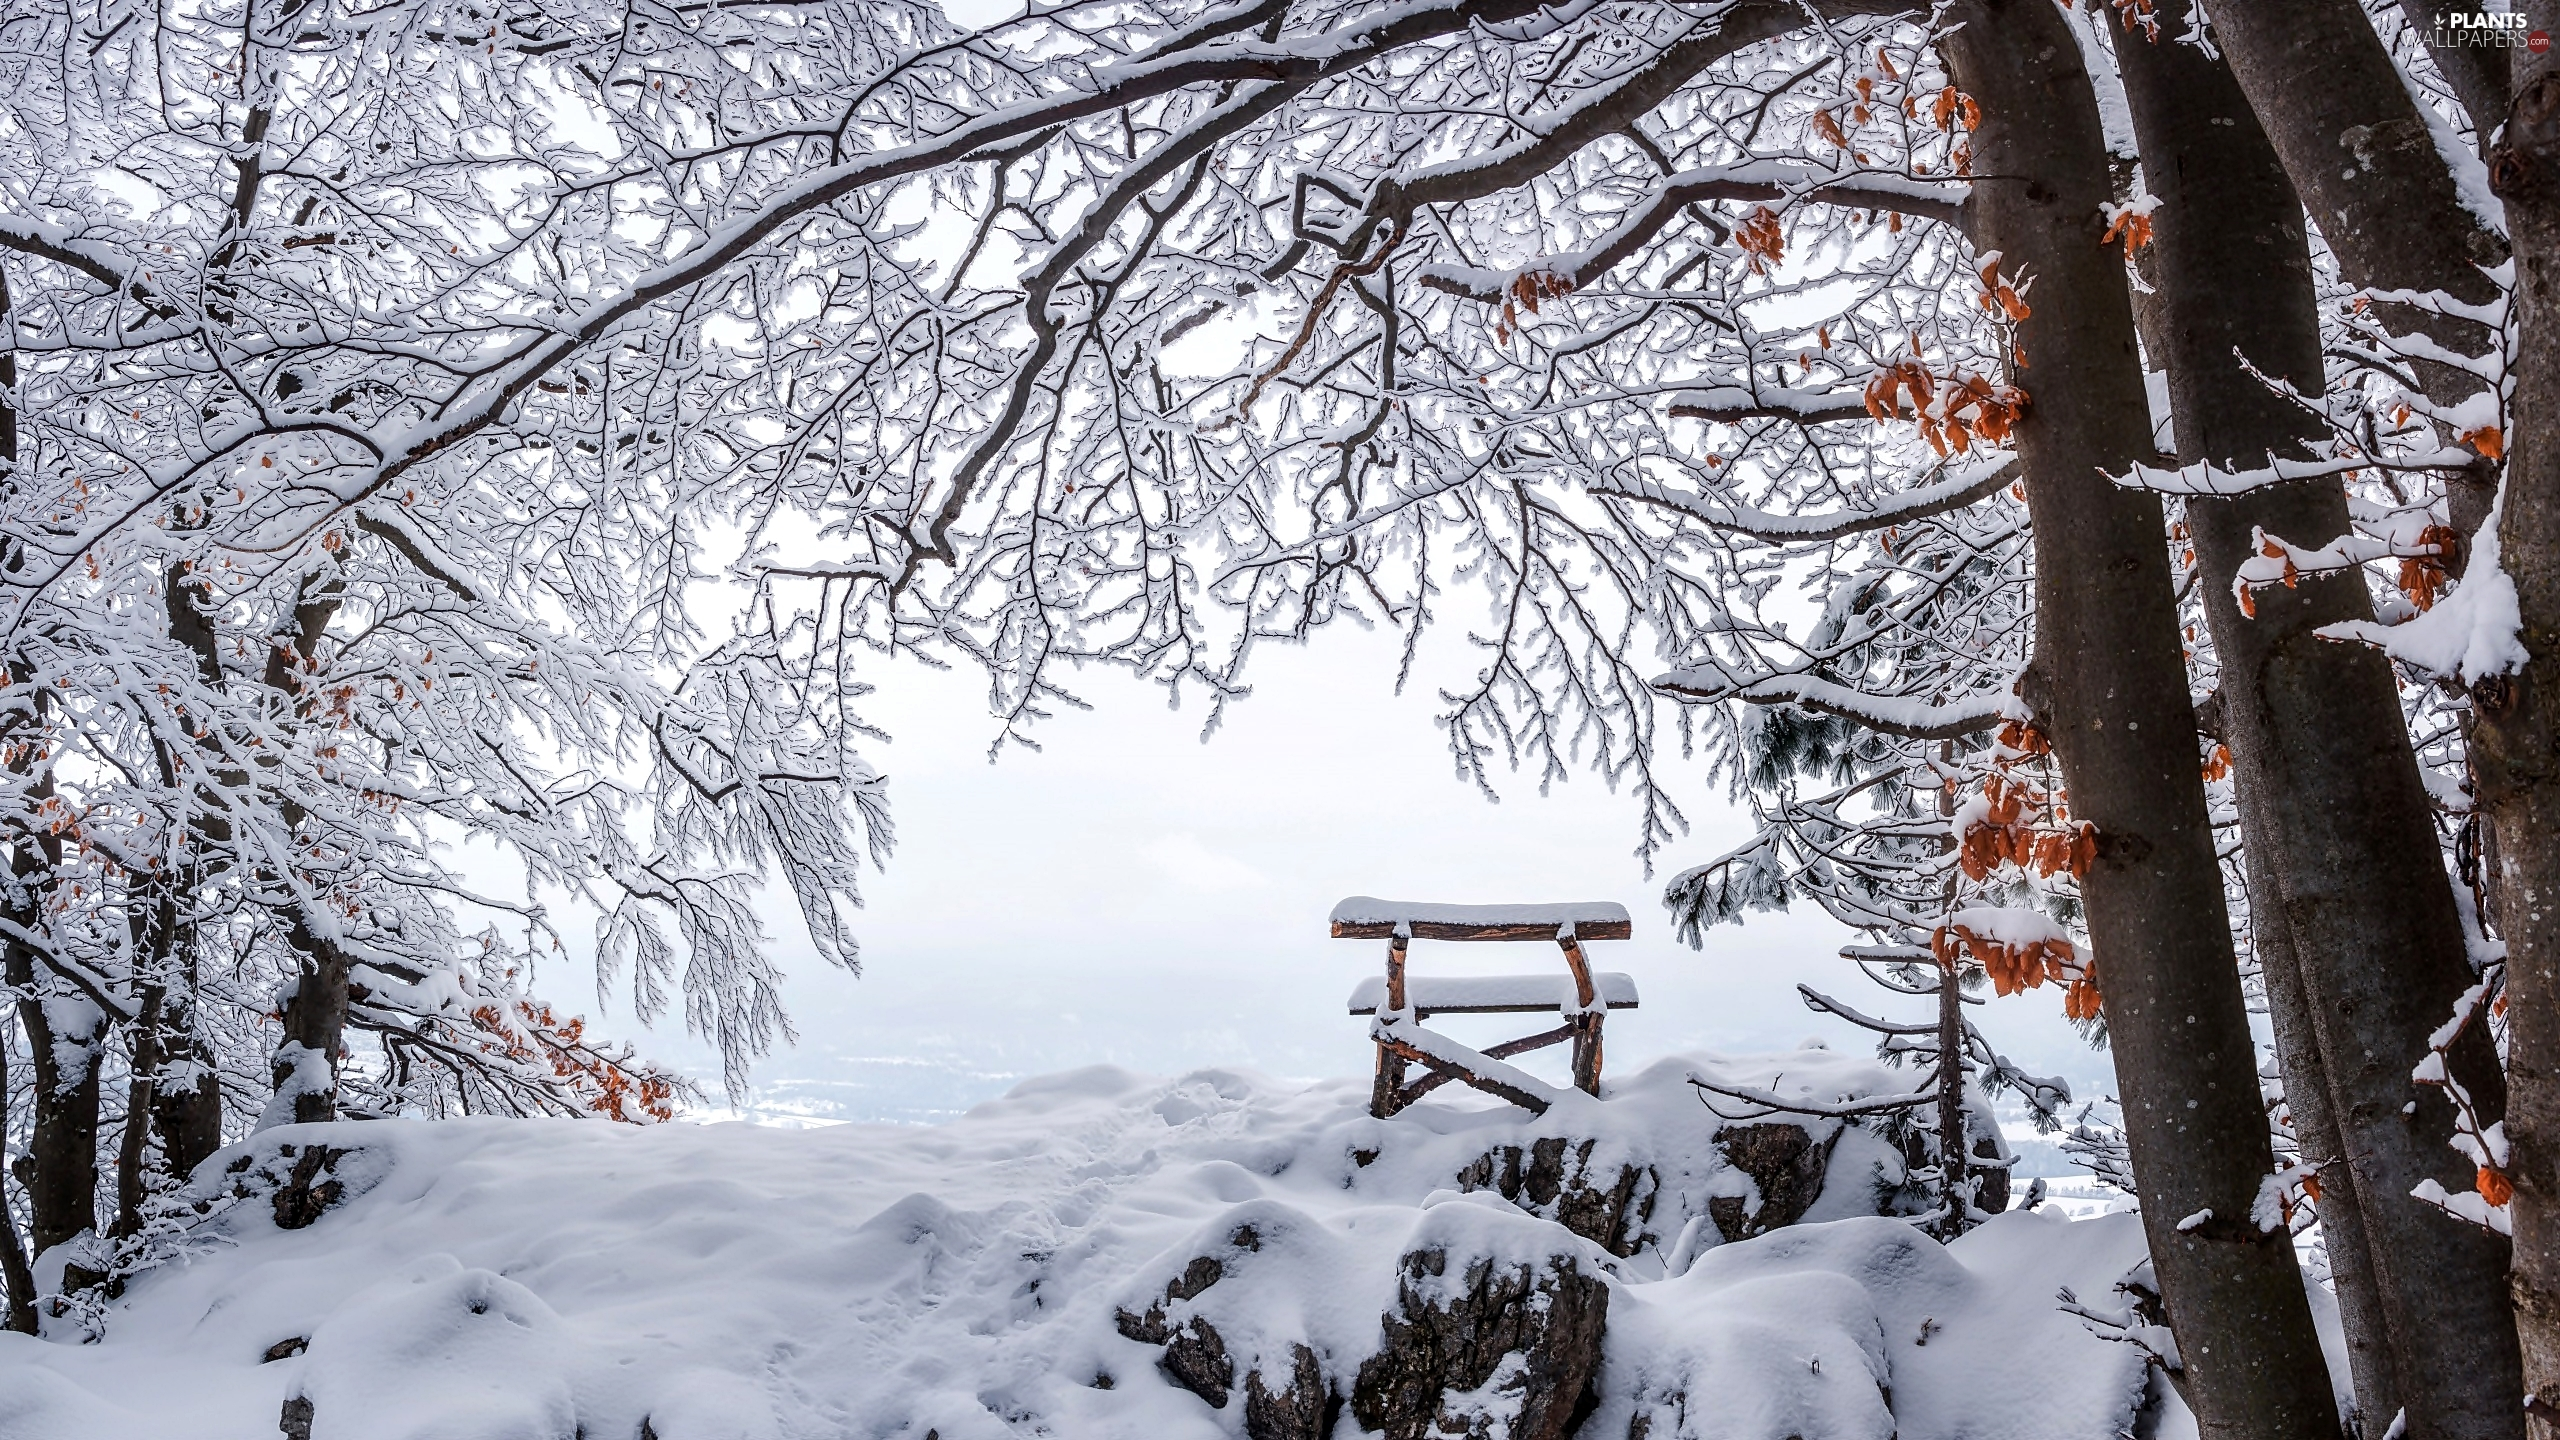 trees, Bench, winter, viewes